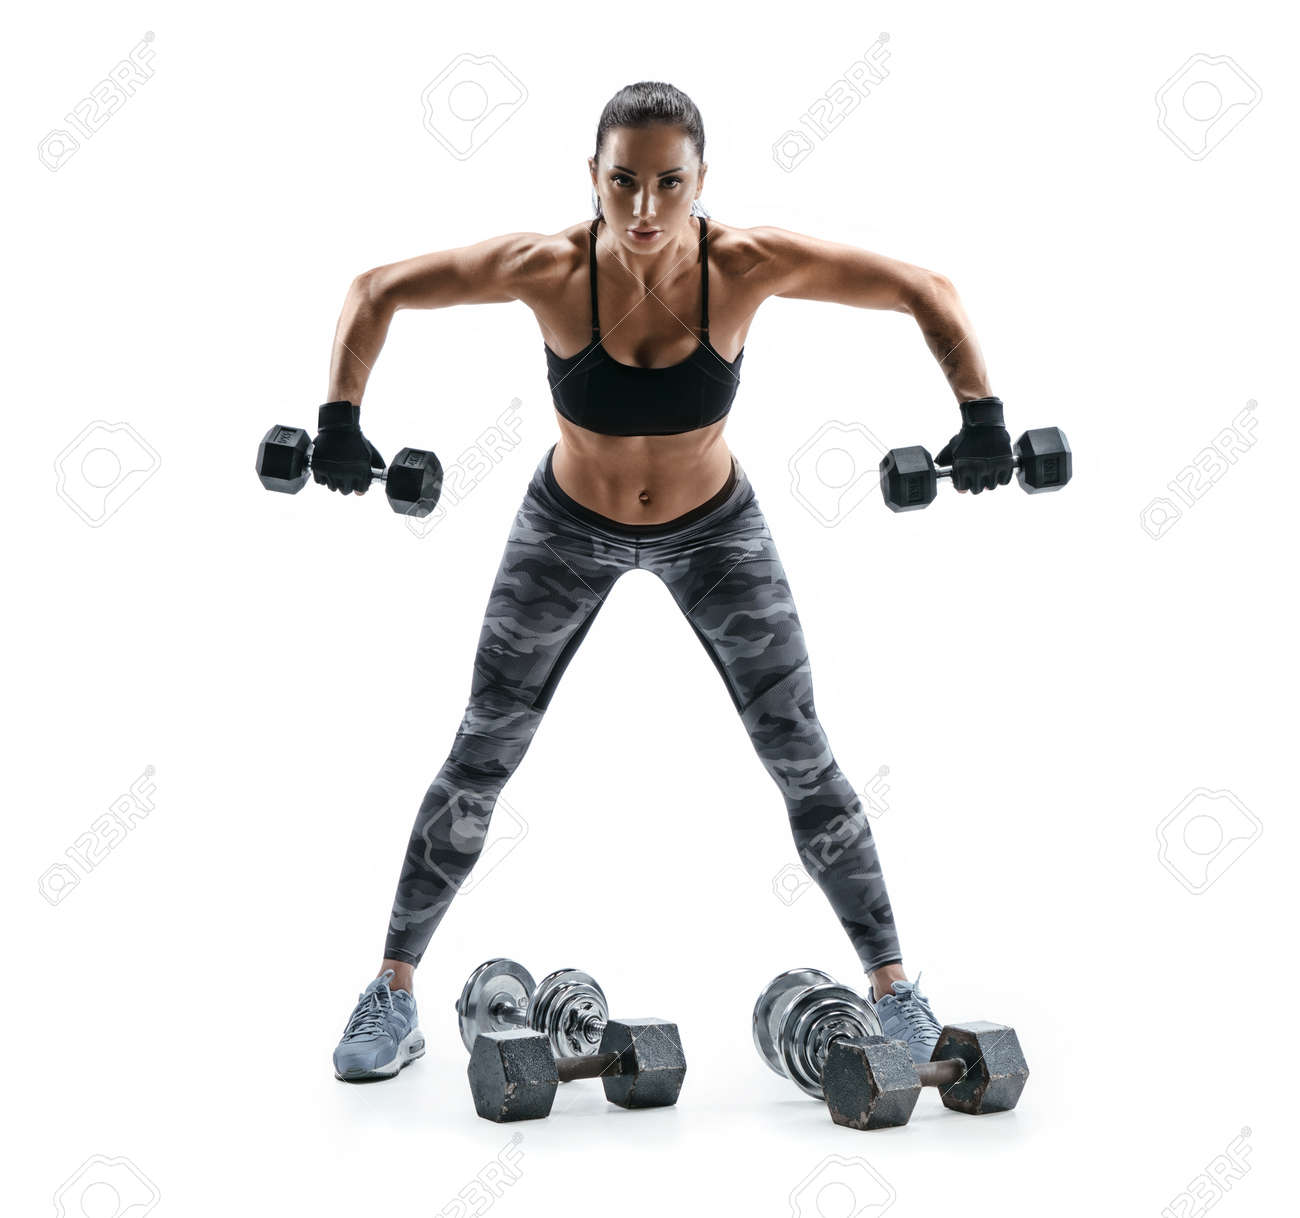 Strong woman exercising with dumbbells for arms. Photo of woman working out with heavy dumbbells on white background. Strength and motivation. - 78518374